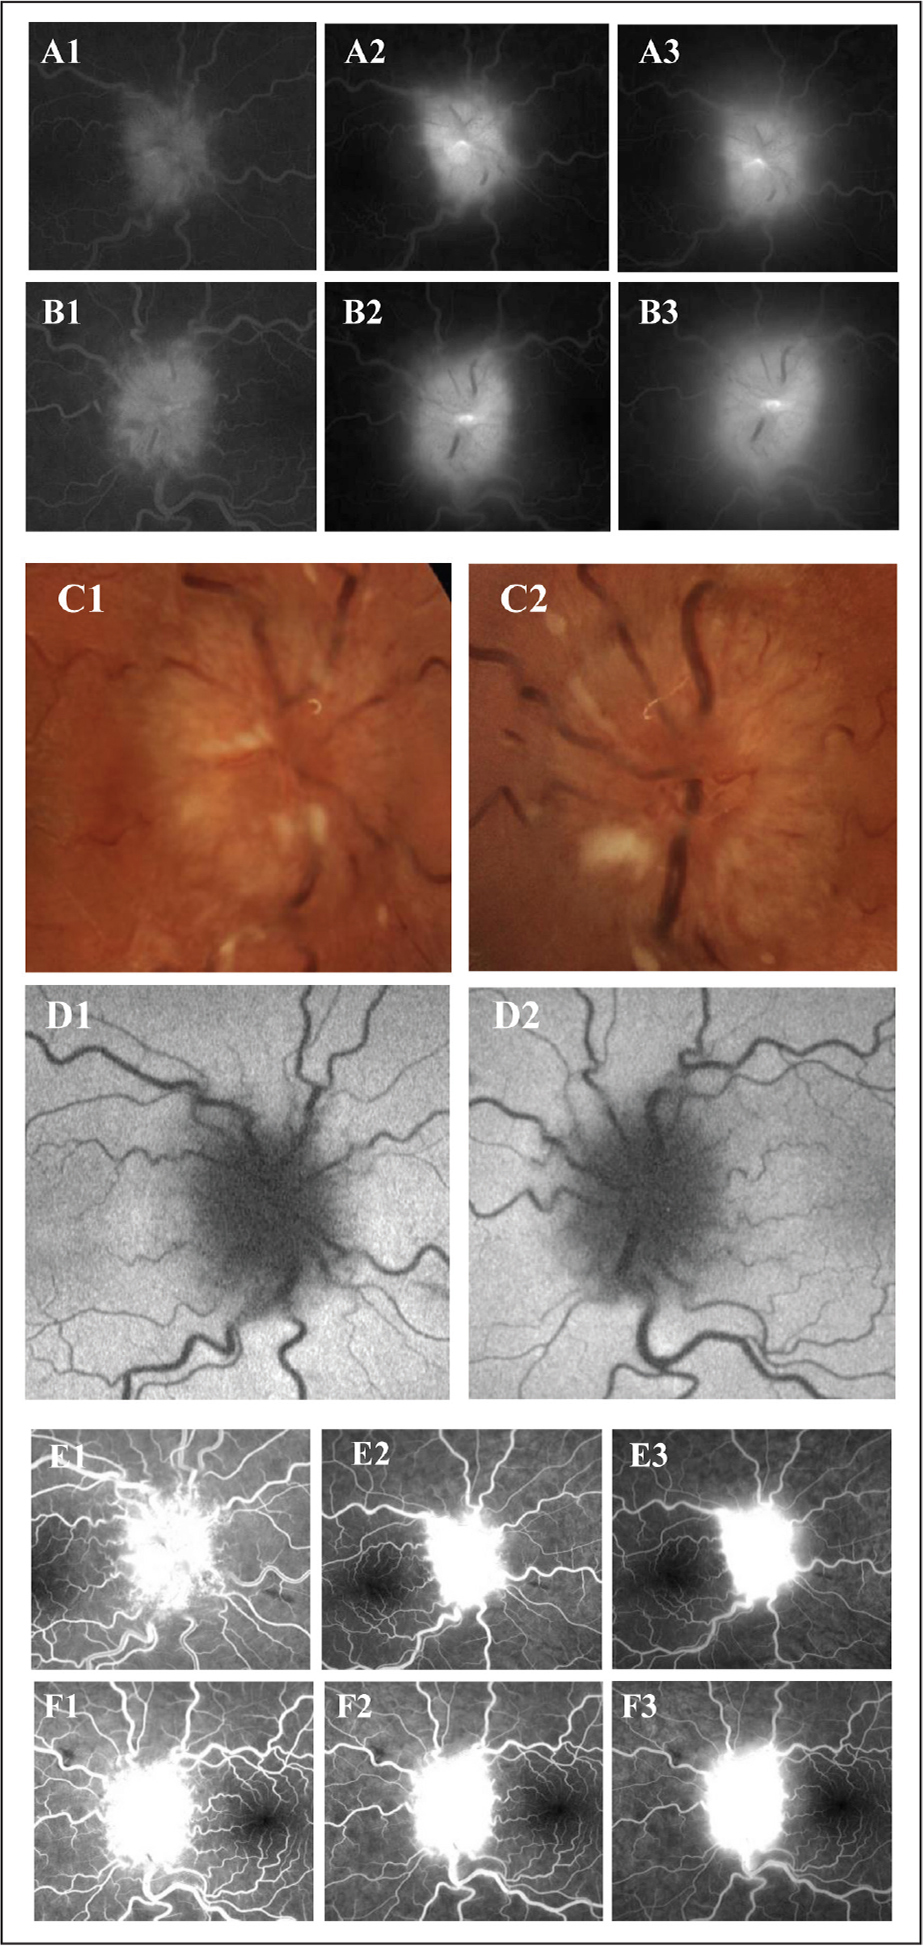 Optic nerve imaging of case 4. A1–A3 (right eye), B1–B3 (left eye): oral fluorescein angiography images at 20, 30, and 60 minutes after dye consumption. Increasing hyperfluorescence with indistinct margins. C1 (right eye), C2 (left eye): color photographs showing 360 degrees of optic nerve head elevation with some large vessel obscuration at the disc margin in both eyes. Cotton wool spots are also present on each nerve. D1 (right eye), D2 (left eye): negative autofluorescence of each optic nerve head. E1–E3 (right eye), F1–F3 (left eye): intravenous fluorescein angiography images at < 1, 3, and > 5 minutes after dye injection. Increasing hyperfluorescence at the nerve head in both eyes with indistinct margins.